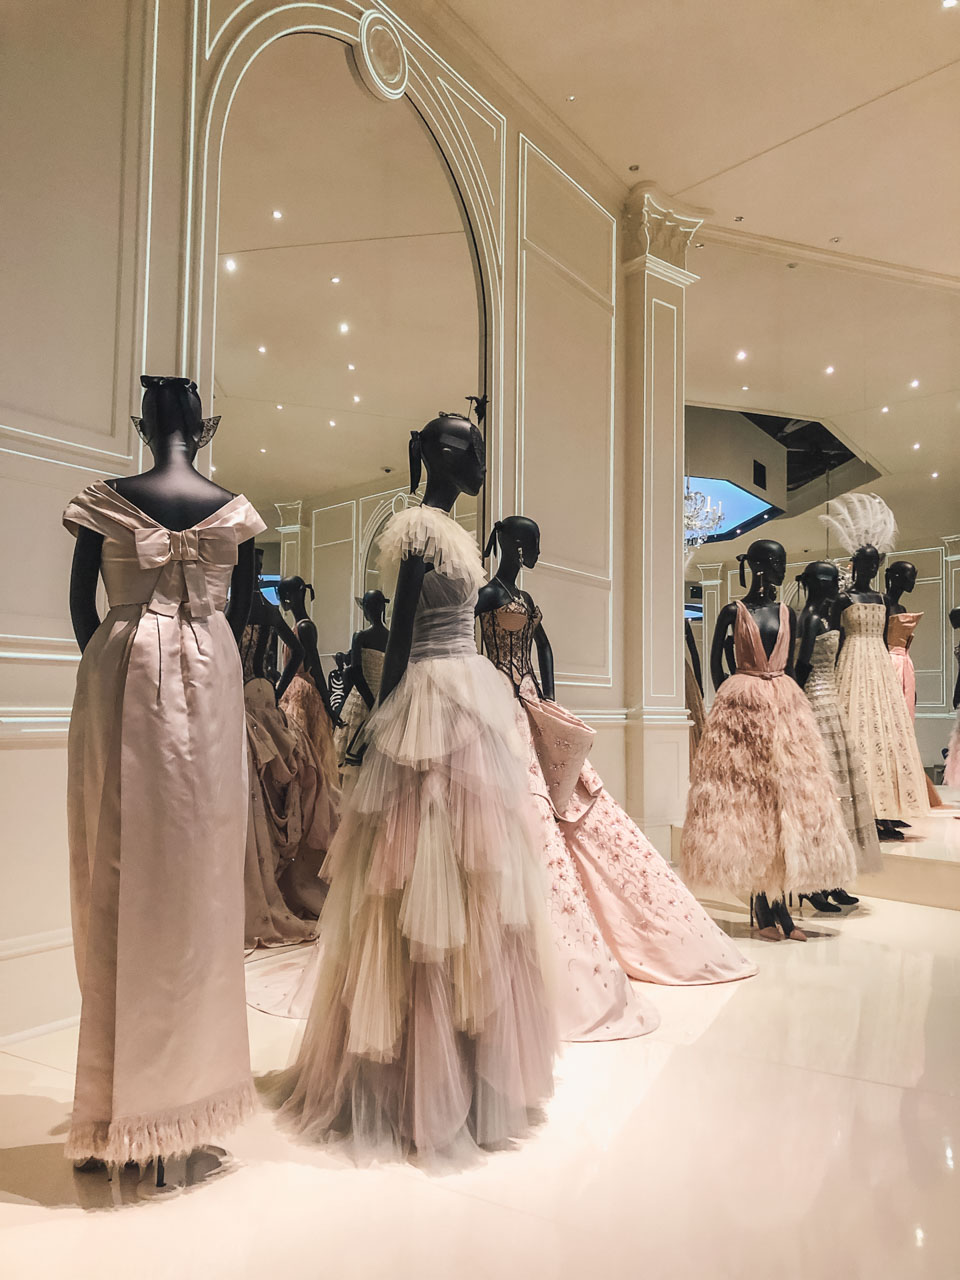 Dior haute couture gowns displayed at the Victoria and Albert Museum in London